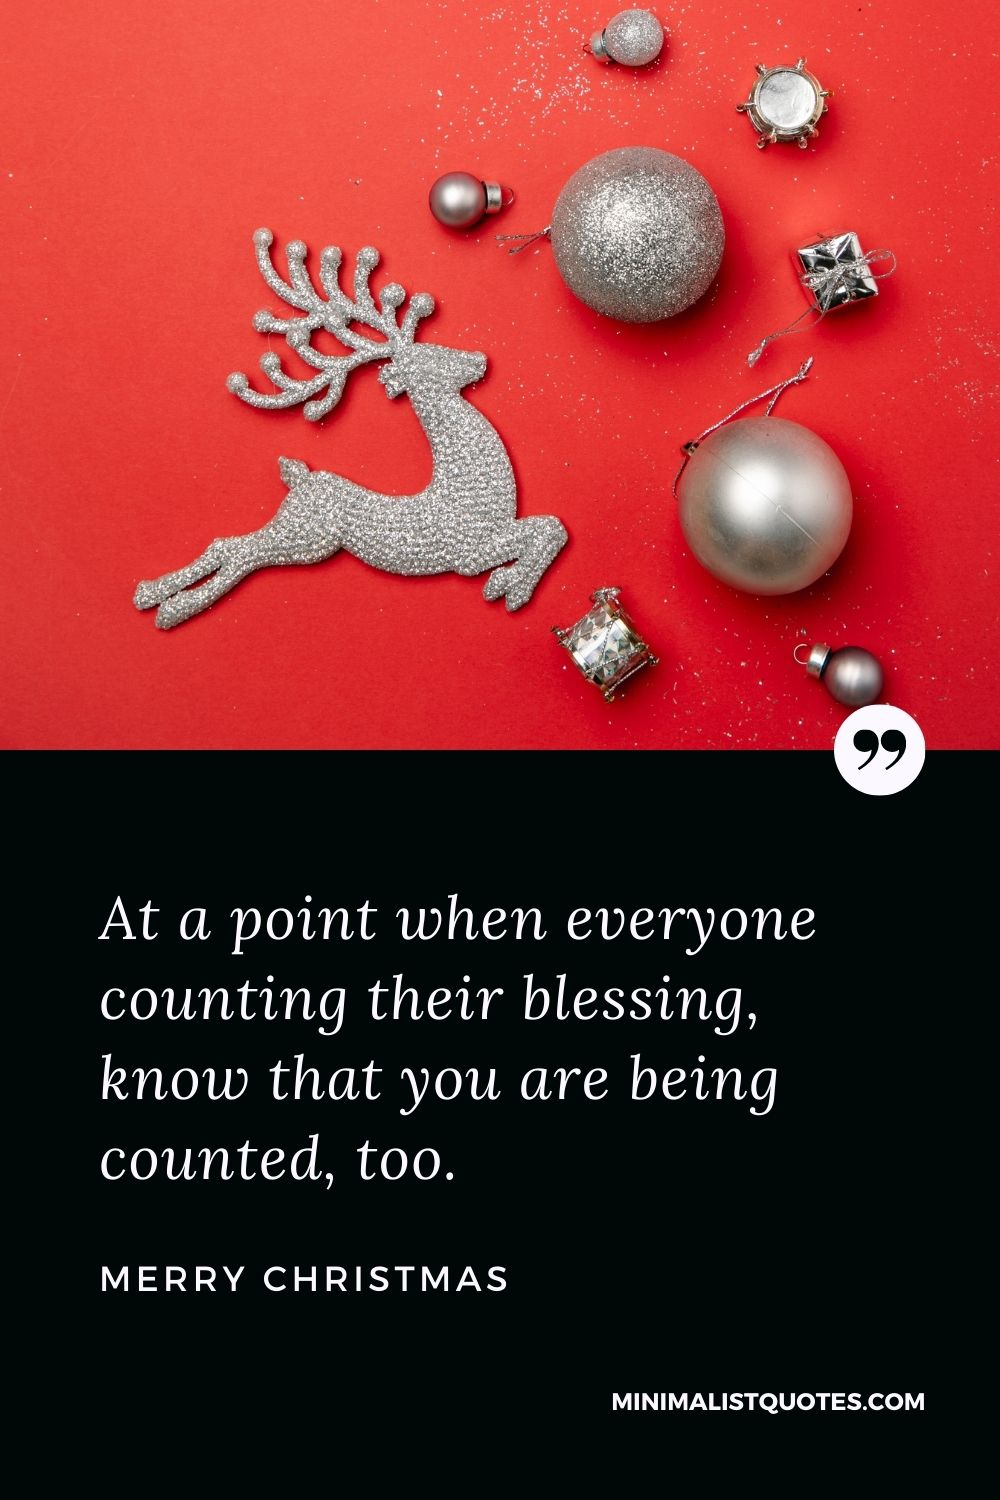 Merry Christmas Wish - At a point when everyone counting their blessing, know that you are being counted, too.